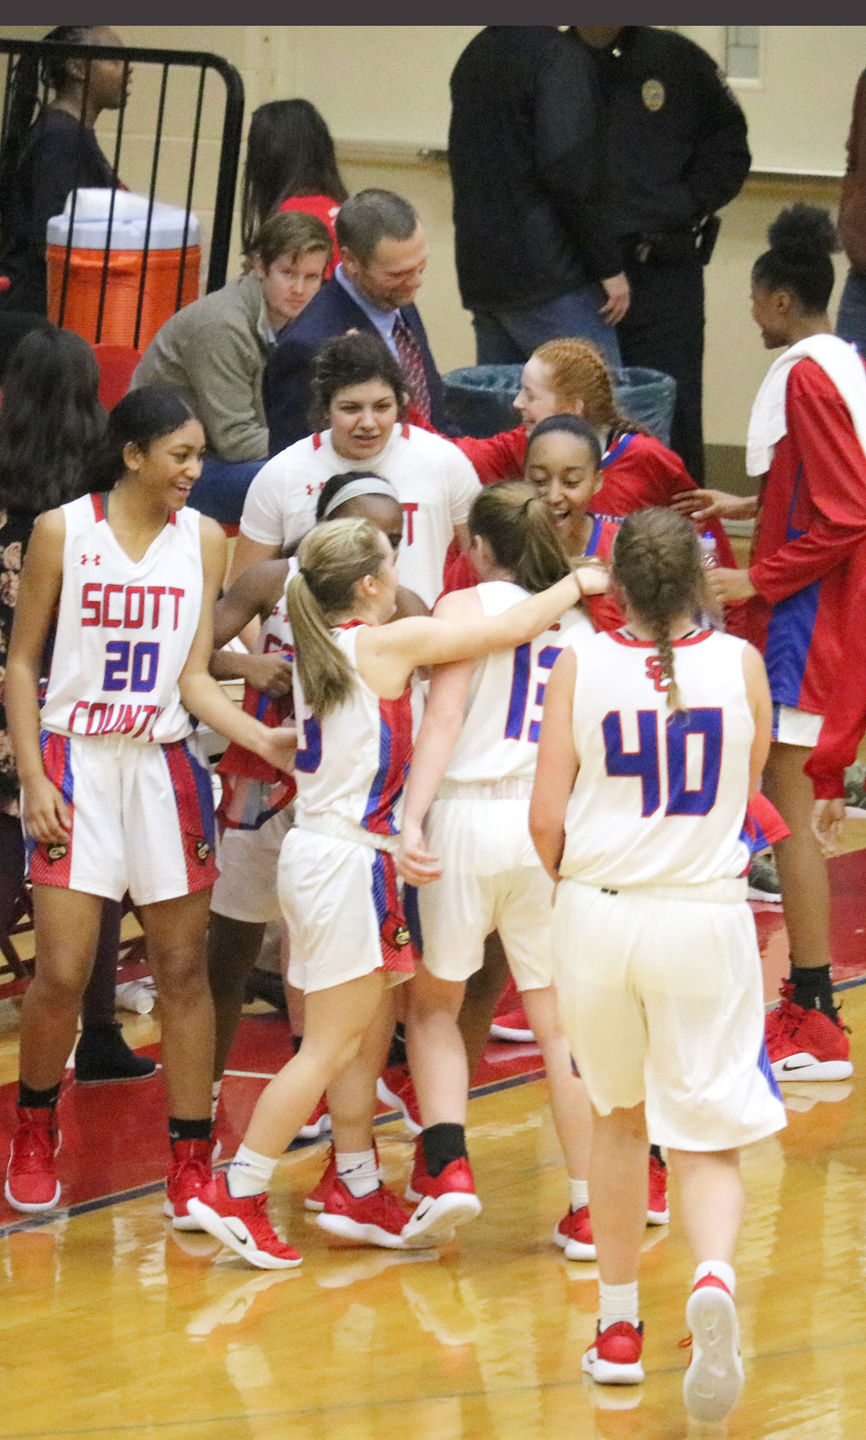 Girls' basketball: Scott County scores 100 points for first time since 2007